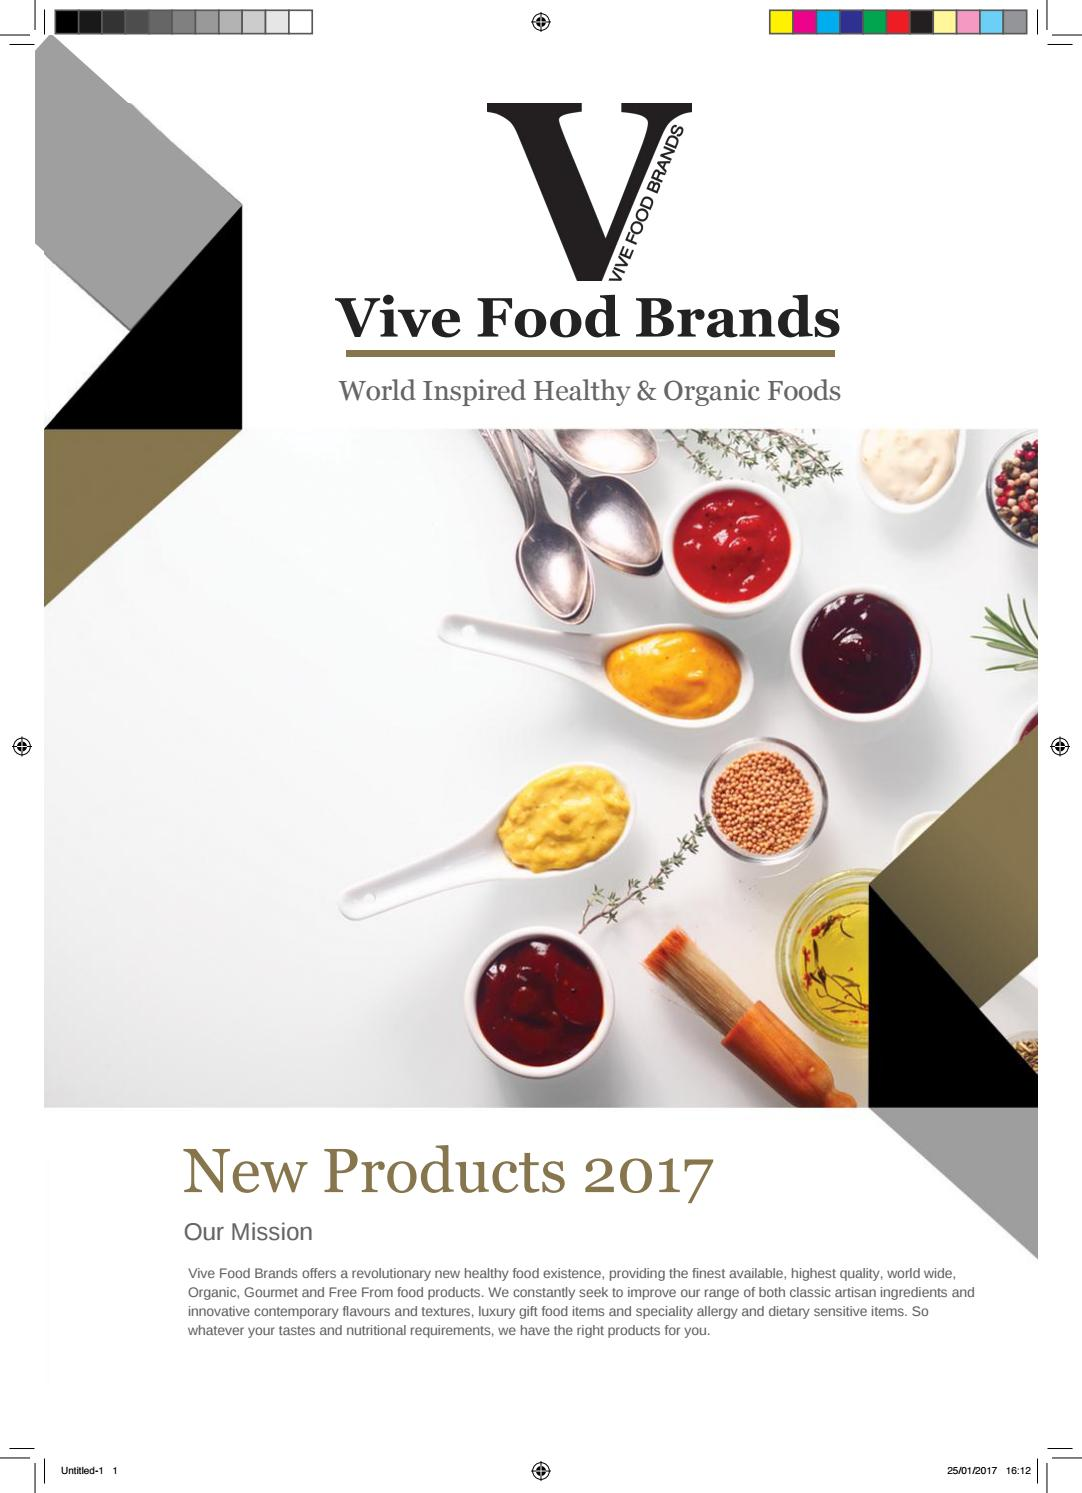 VIVE FOOD BRANDS NEW PRODUCTS by Healthy Foods Online - issuu